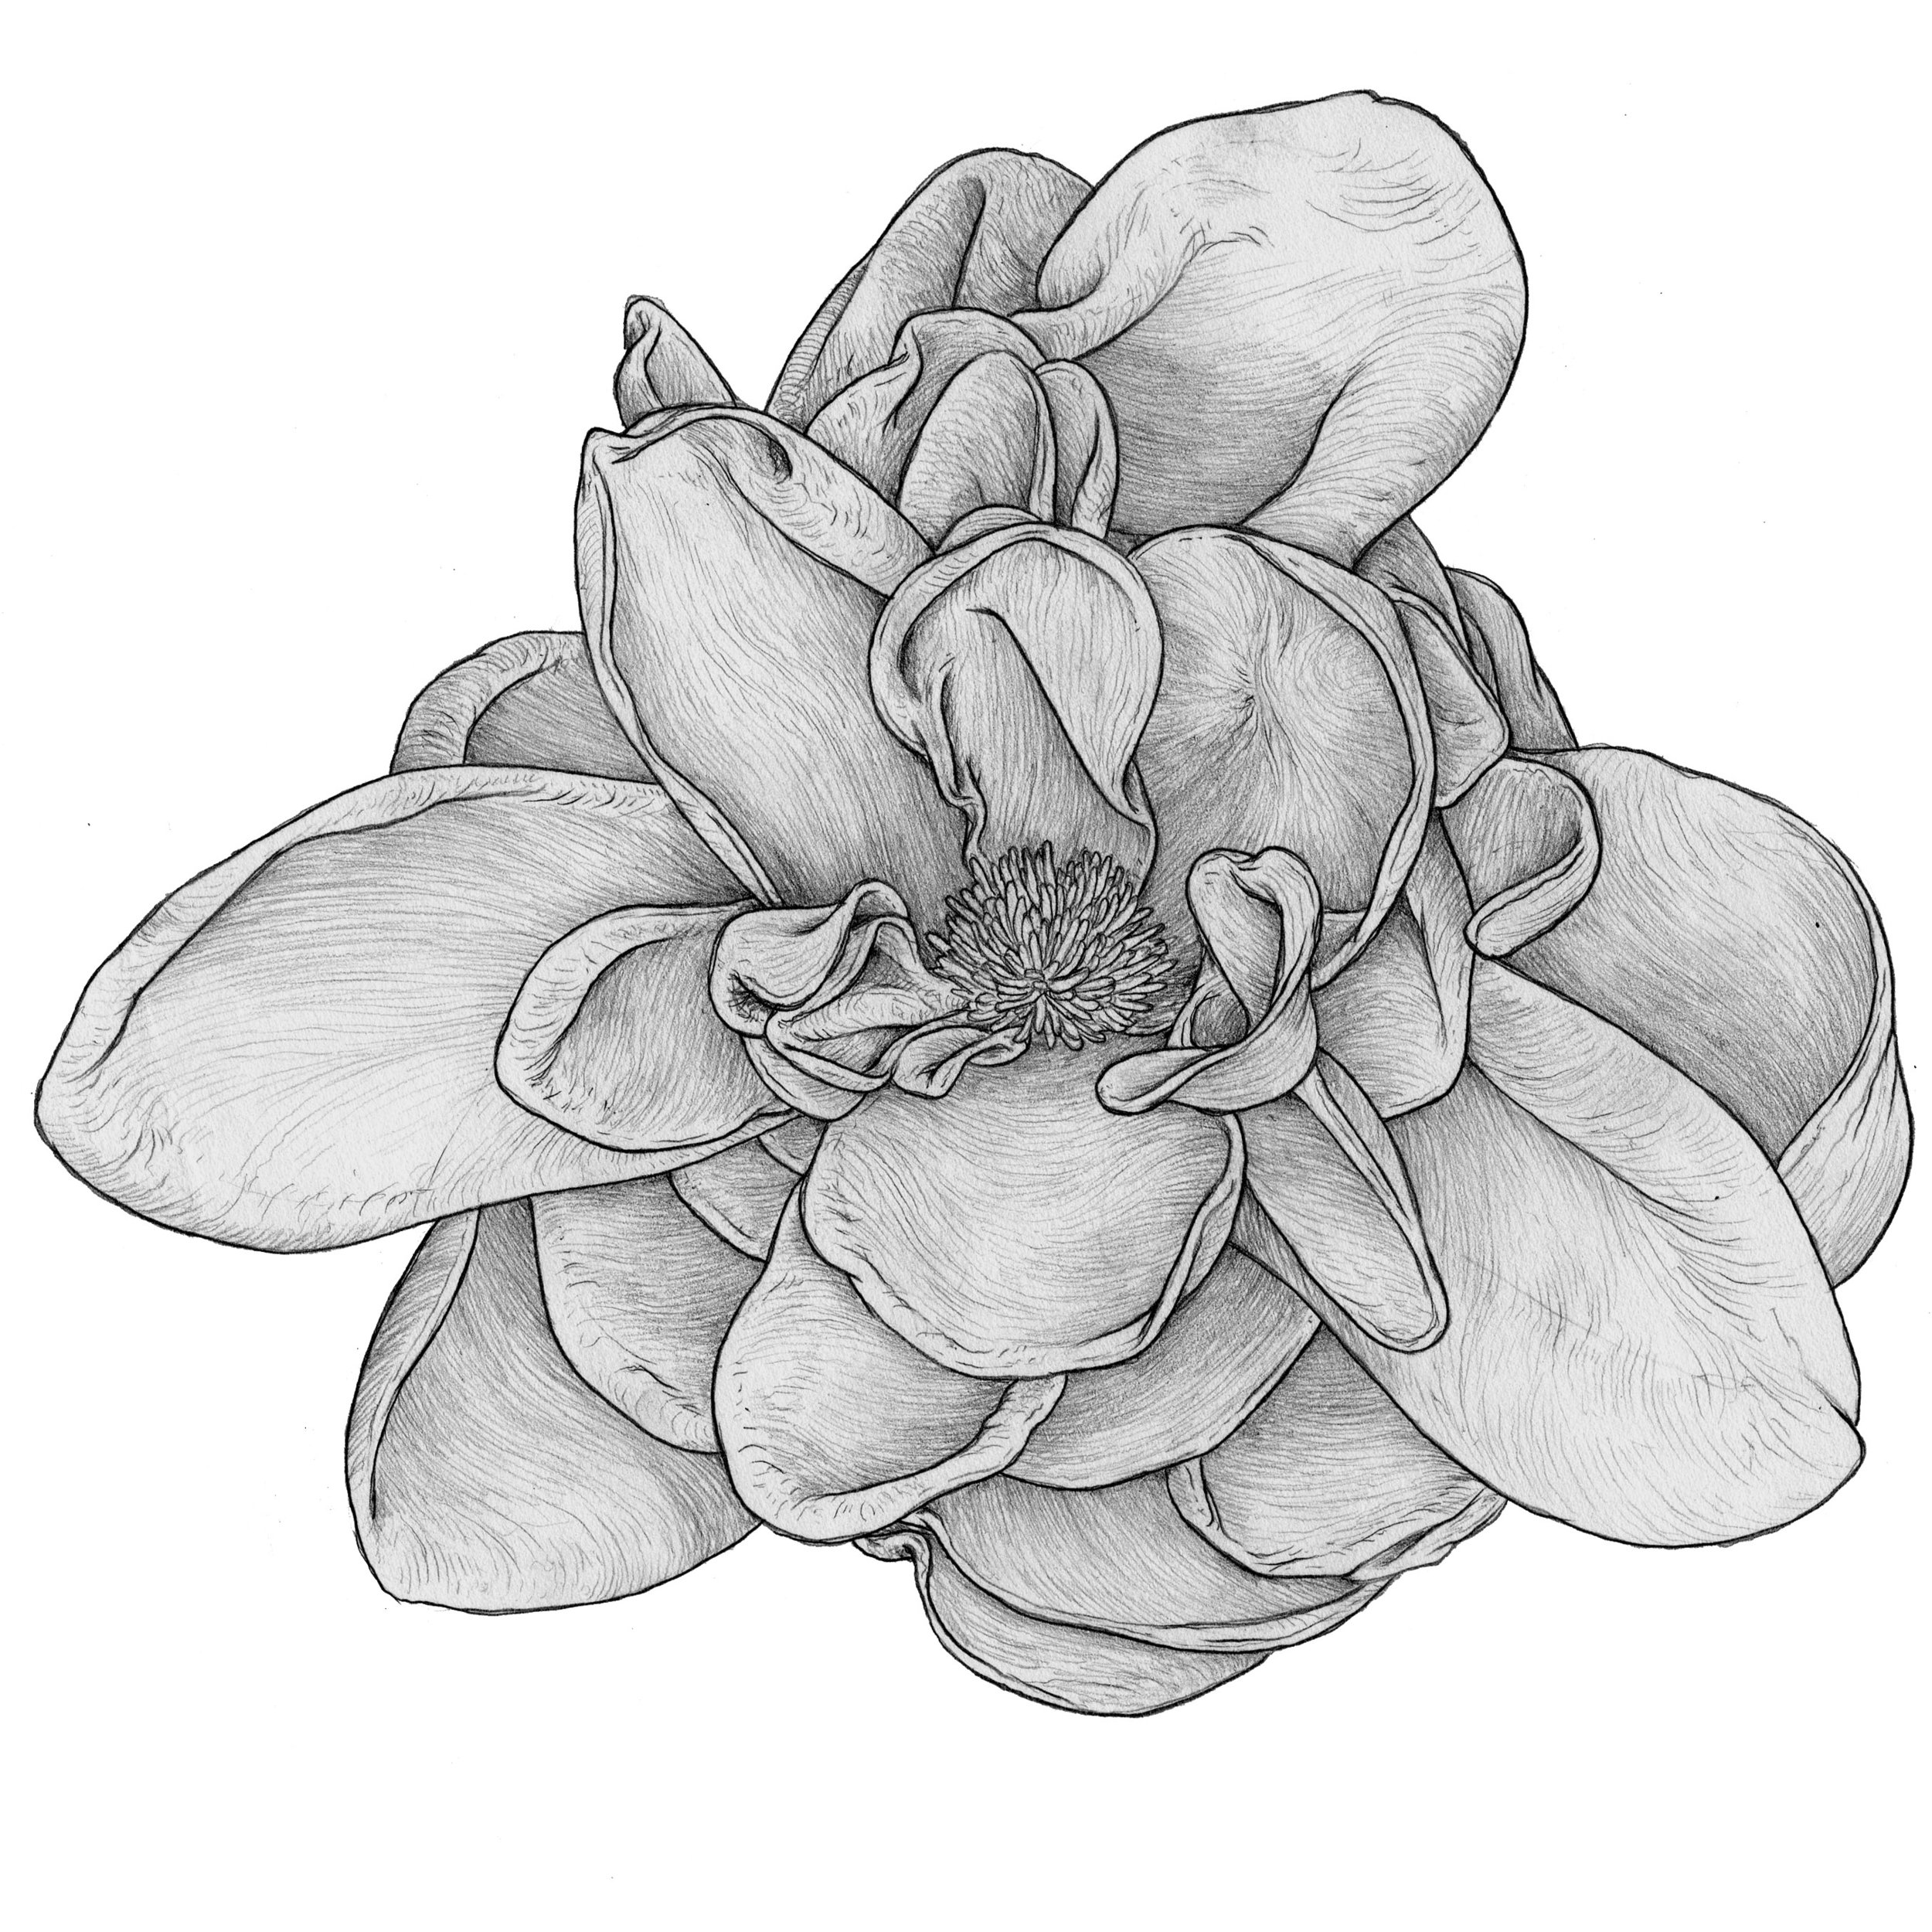 graphite sketch flower.jpg